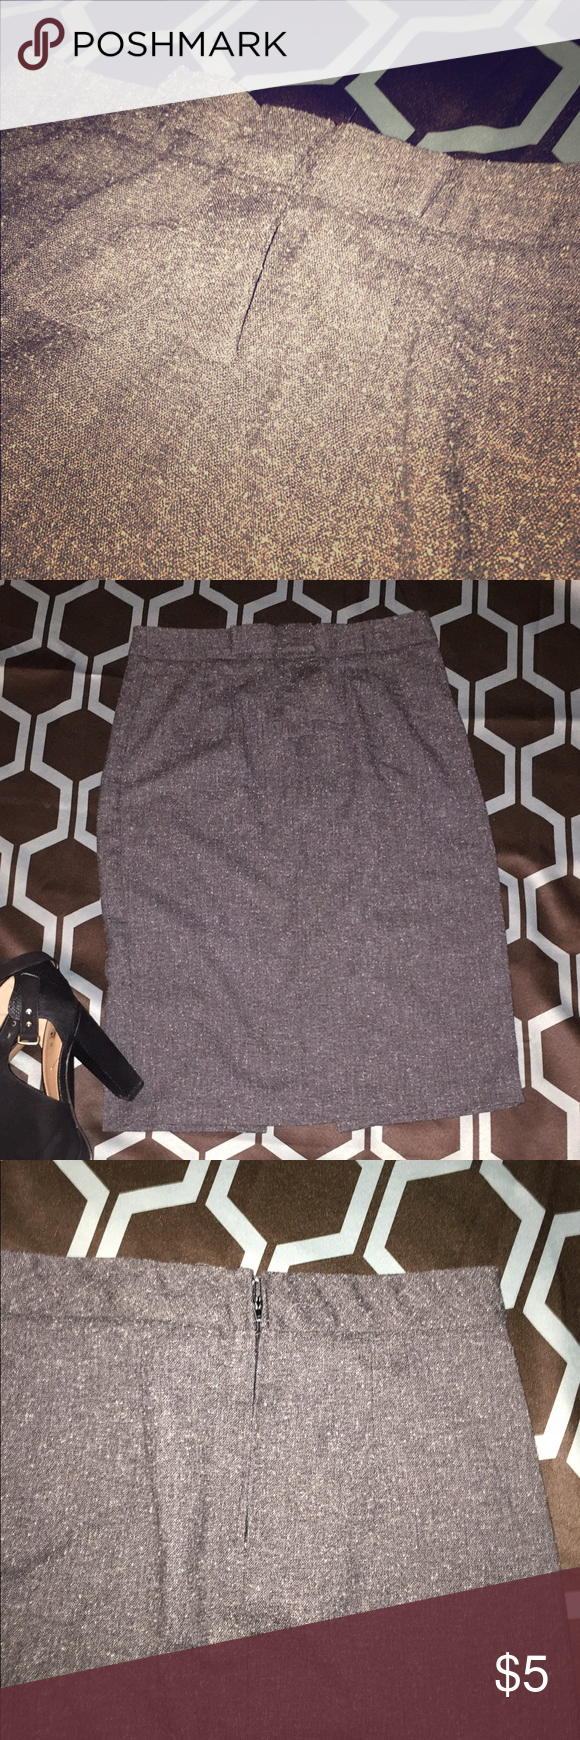 Forever21 pencil skirt Used tweed like grey pencil skirt slit in back, zip in back in good shape Forever 21 Skirts Midi